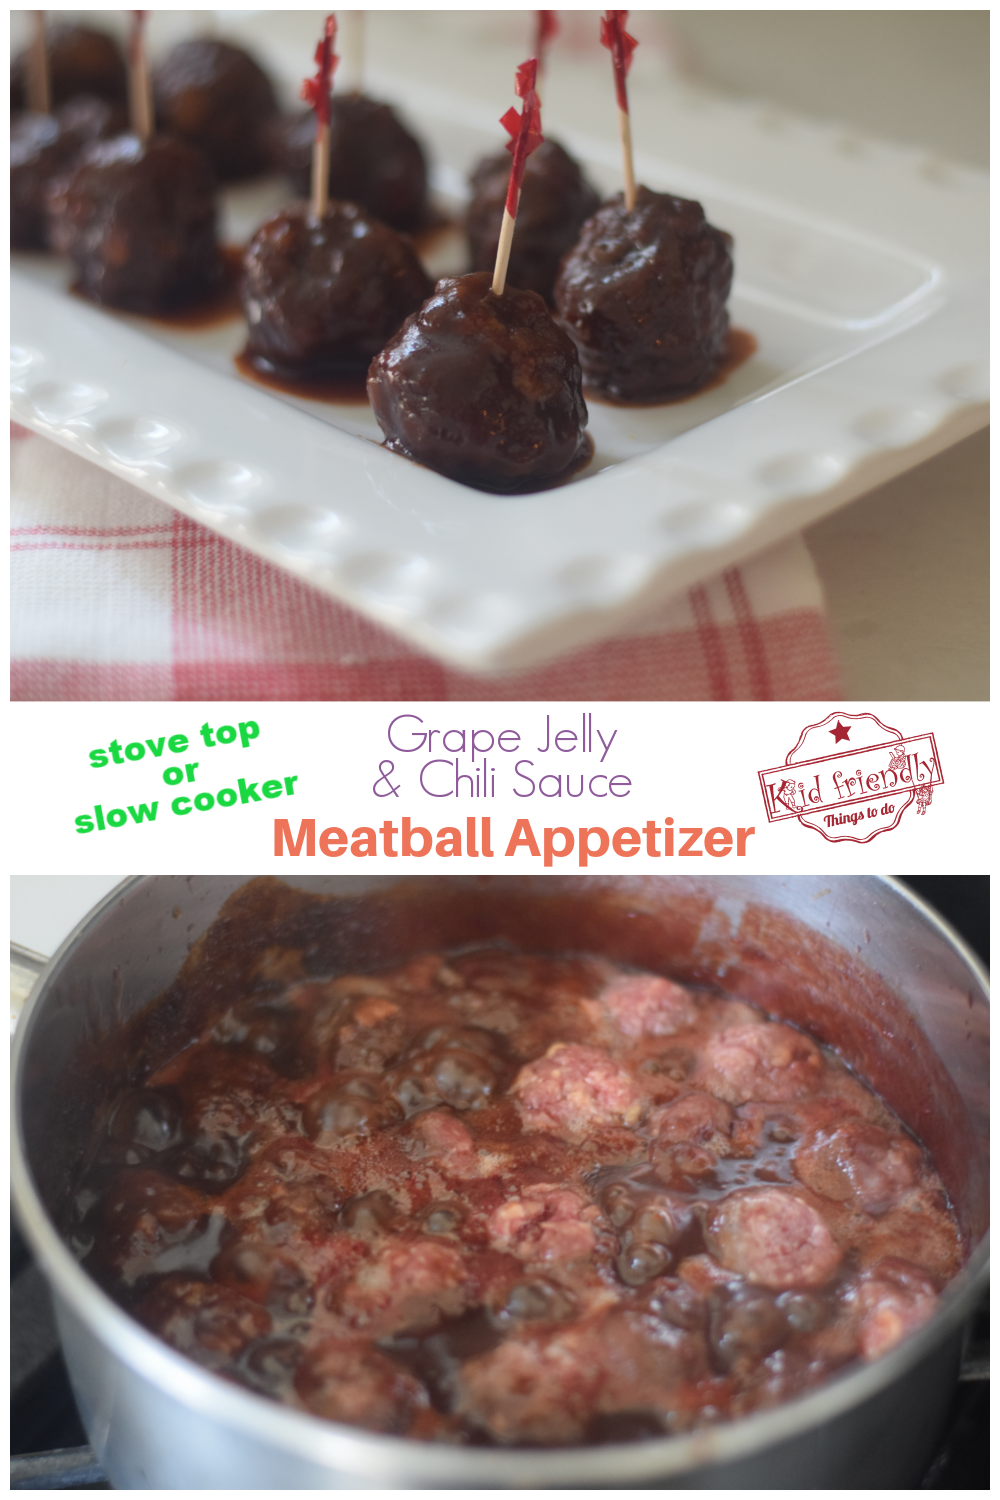 grape jelly meatballs with chili sauce